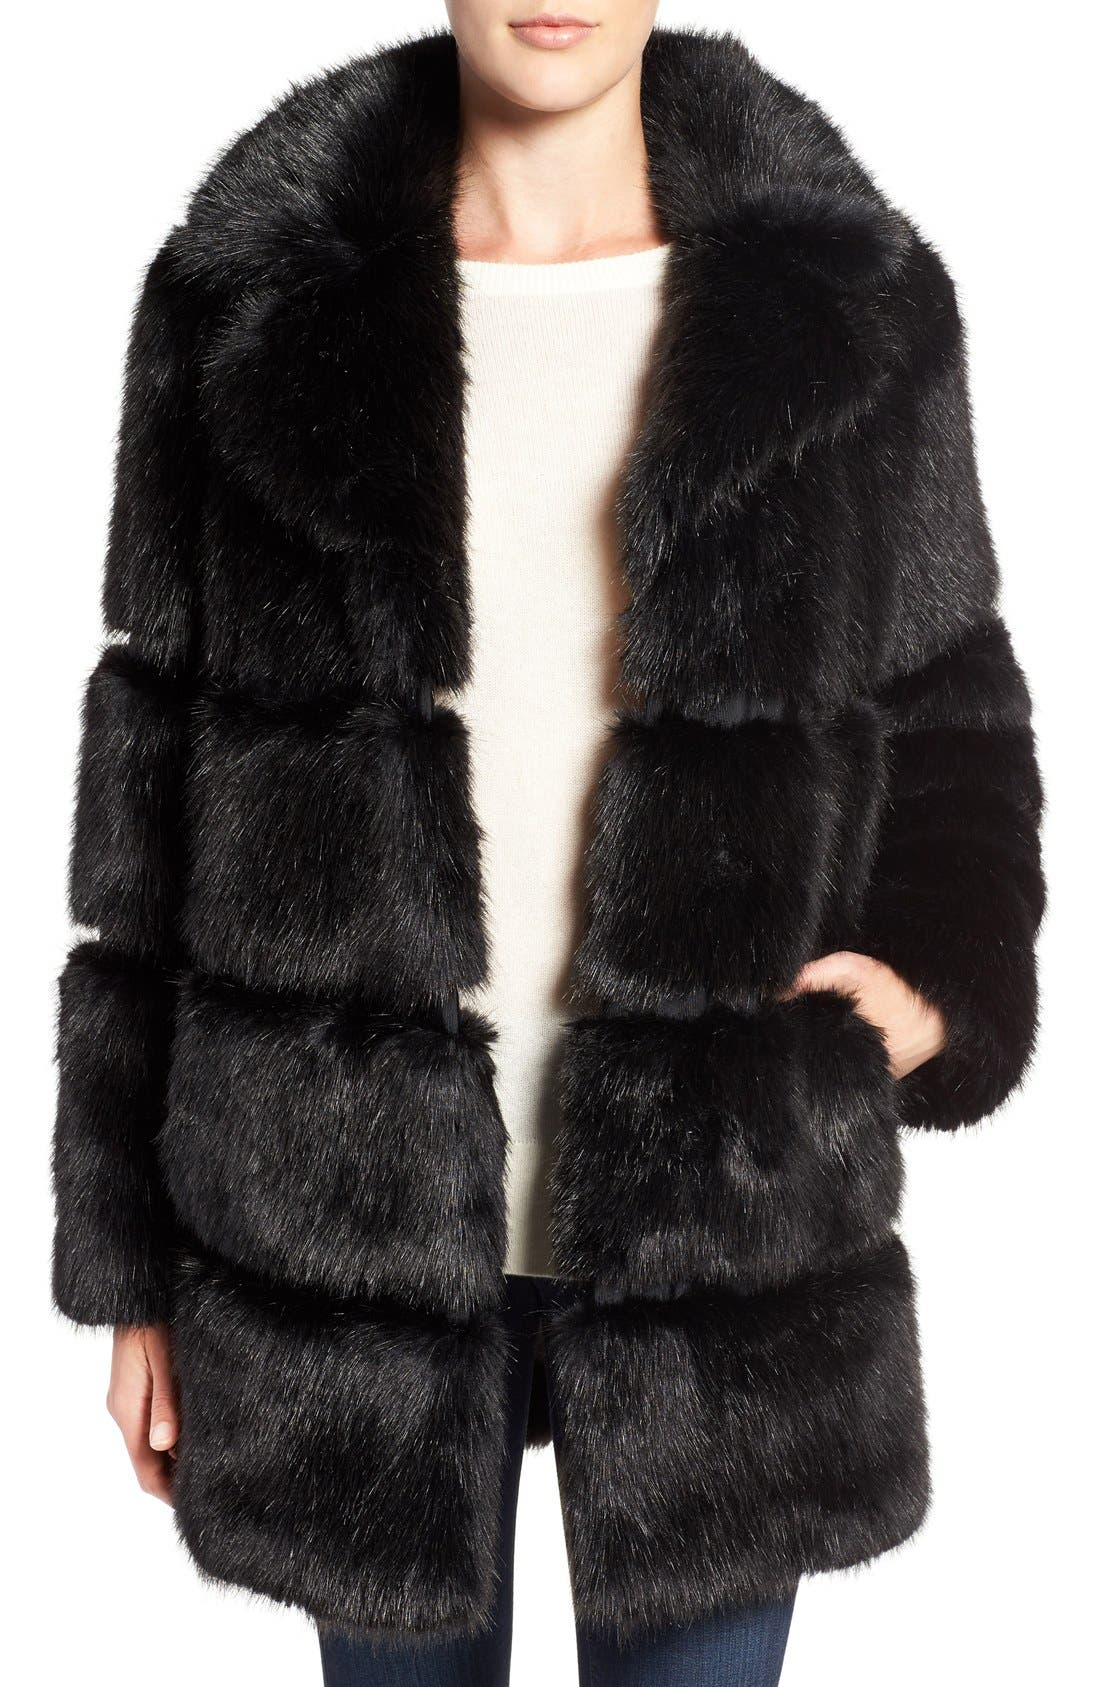 grooved faux fur coat, Main, color, 001